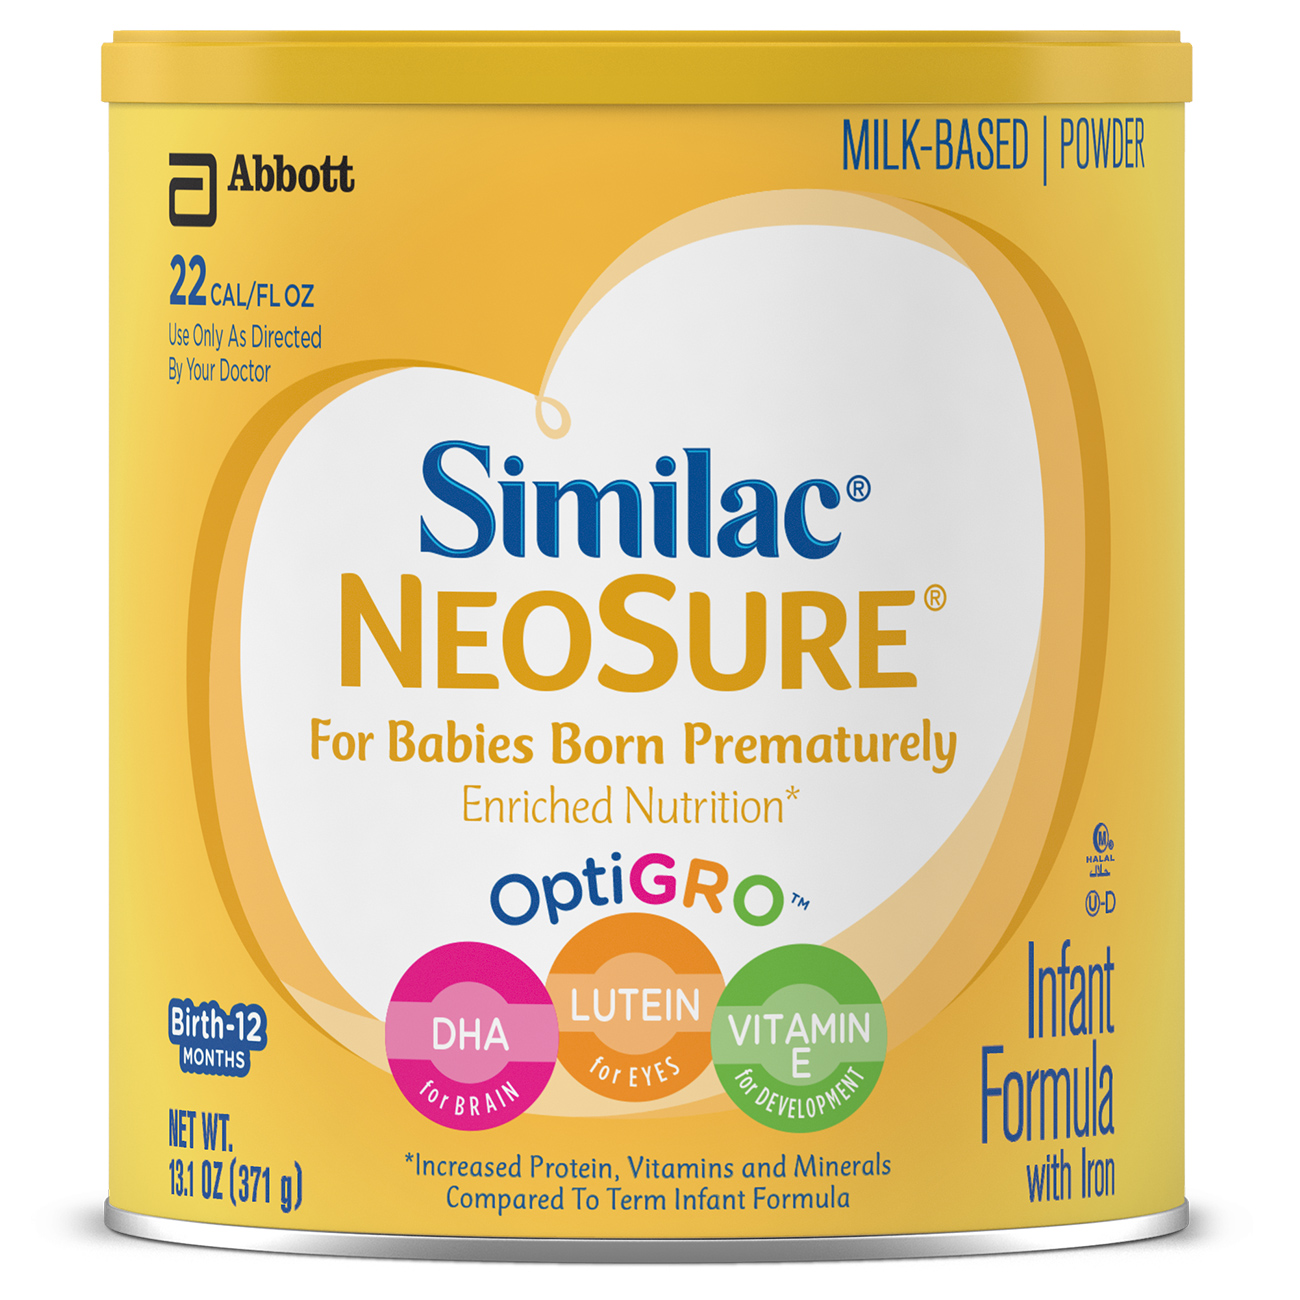 Similac NeoSure Infant Formula with Iron, For Babies Born Prematurely, Powder, 13.1 oz (Pack of 6)